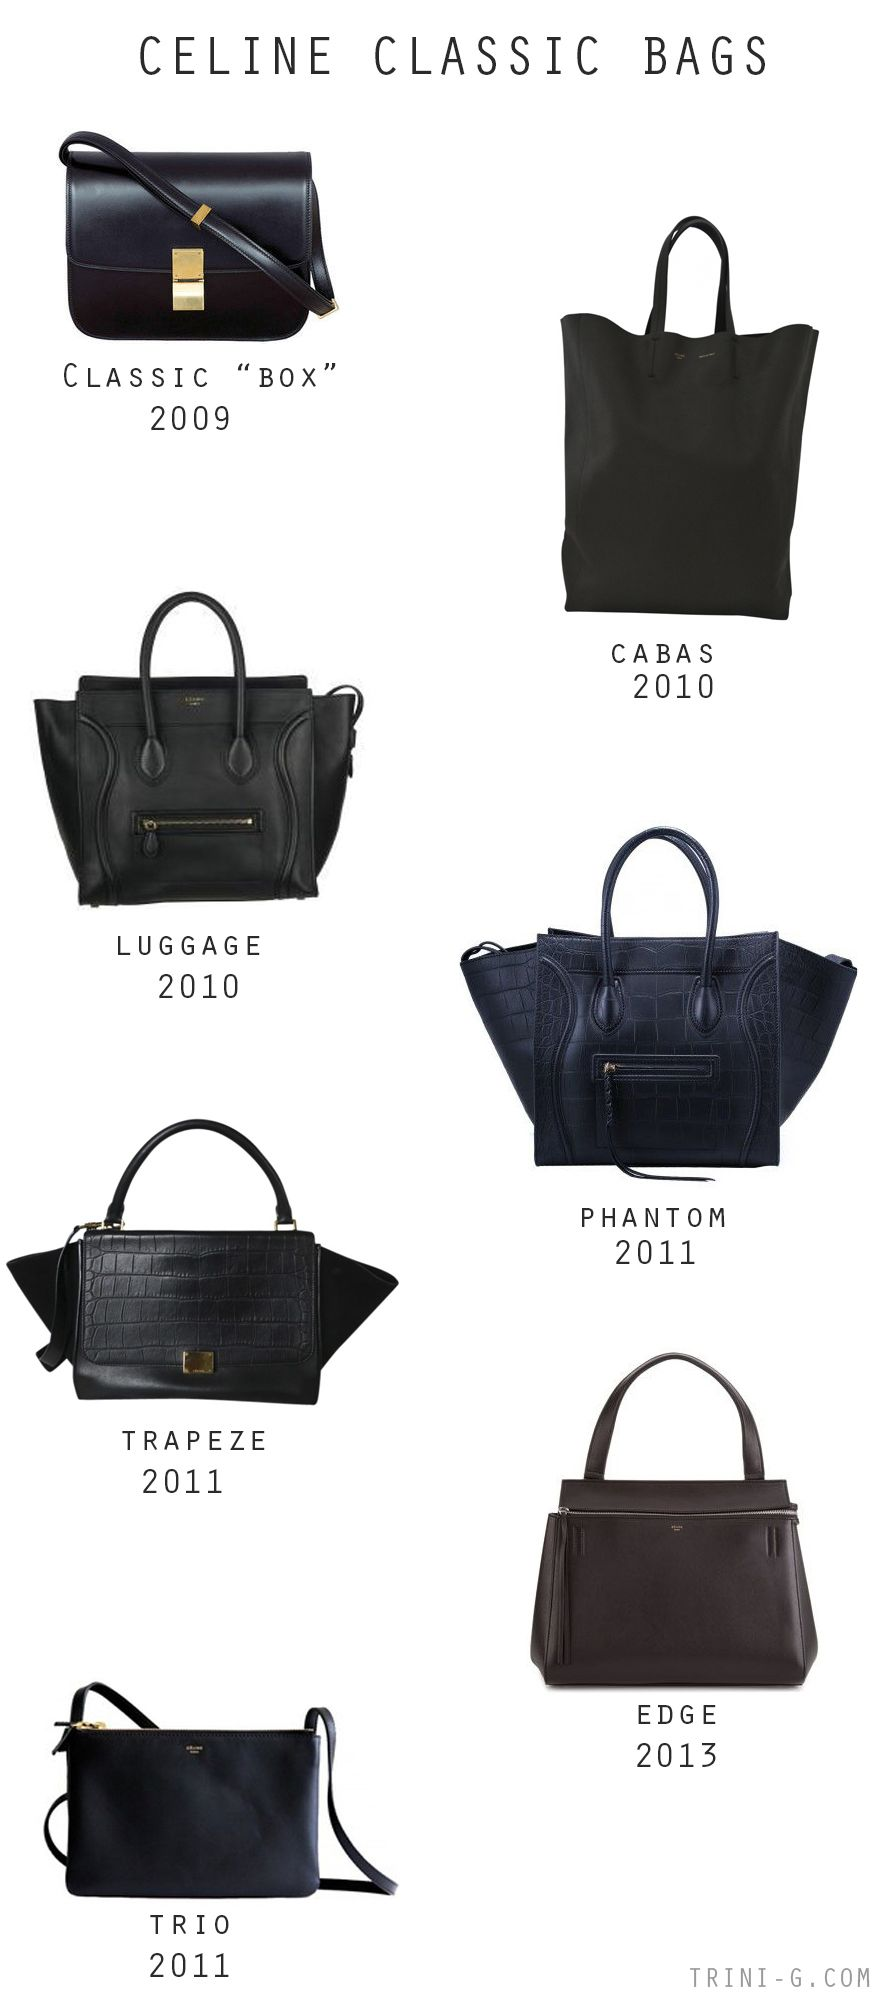 7084d1fb126a Celine classic bags - Luggage